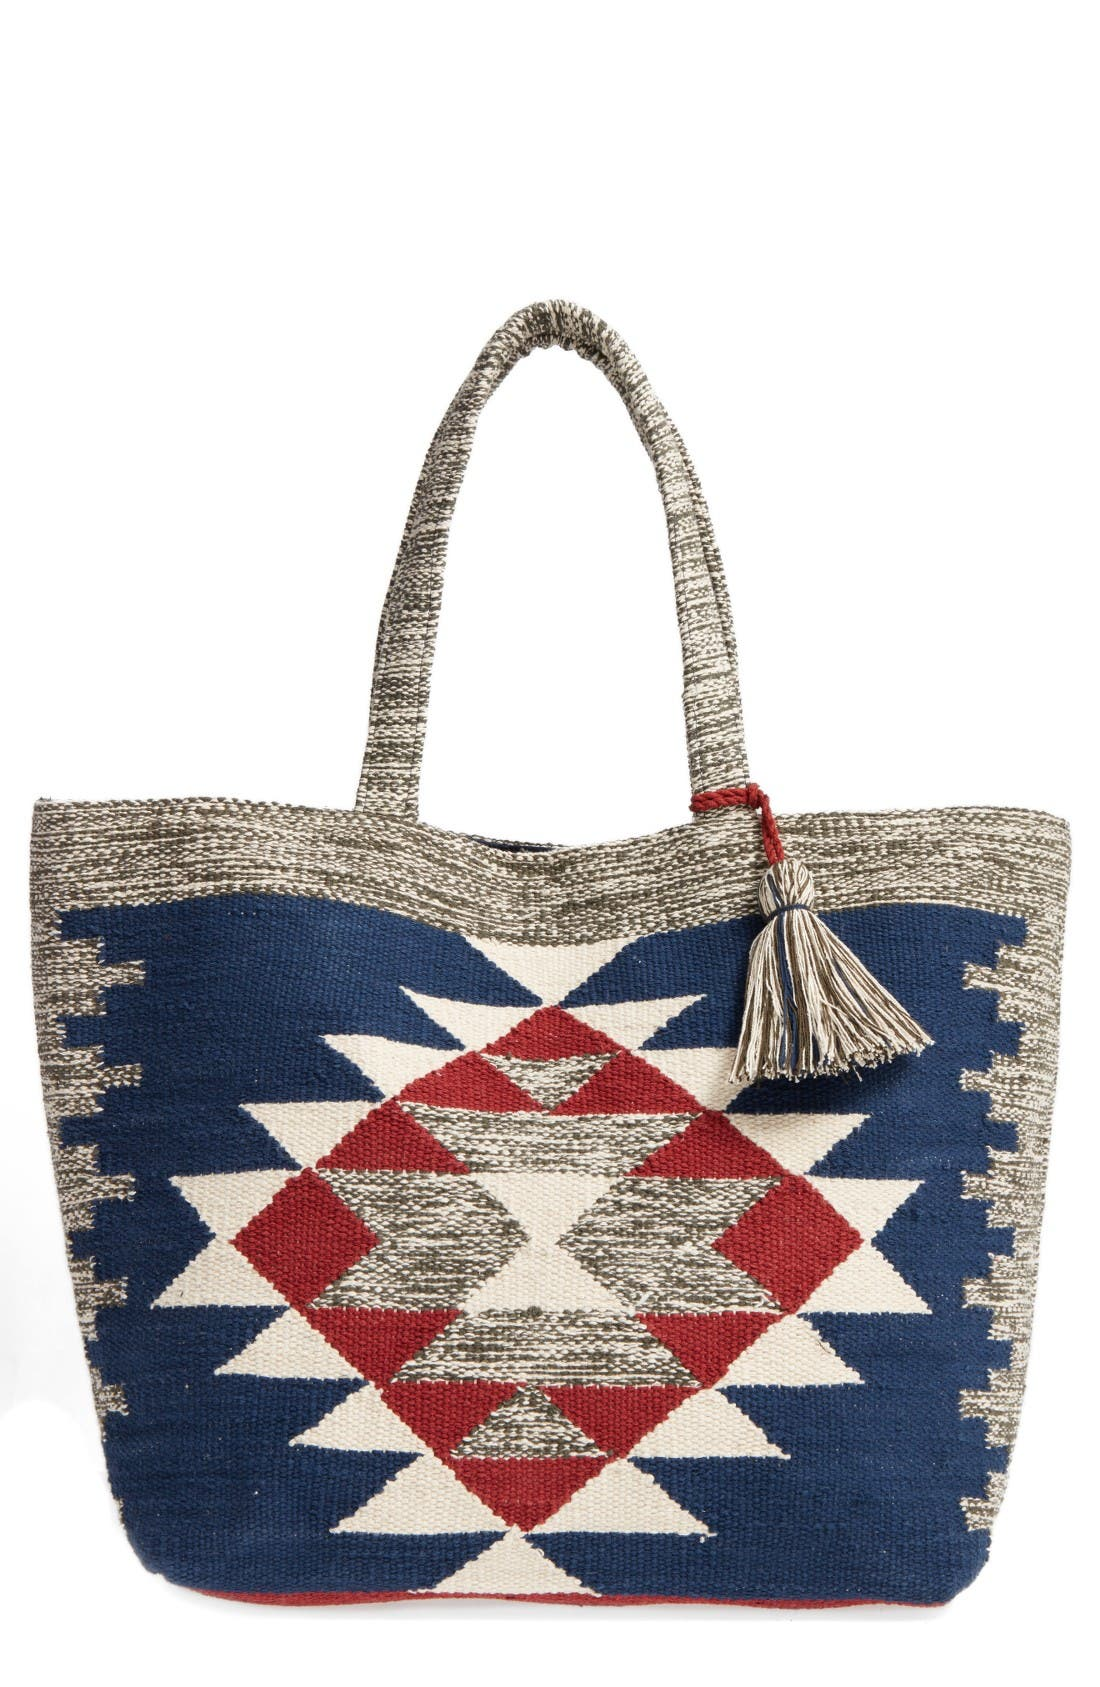 Main Image - Sole Society Rees Woven Geometric Tote